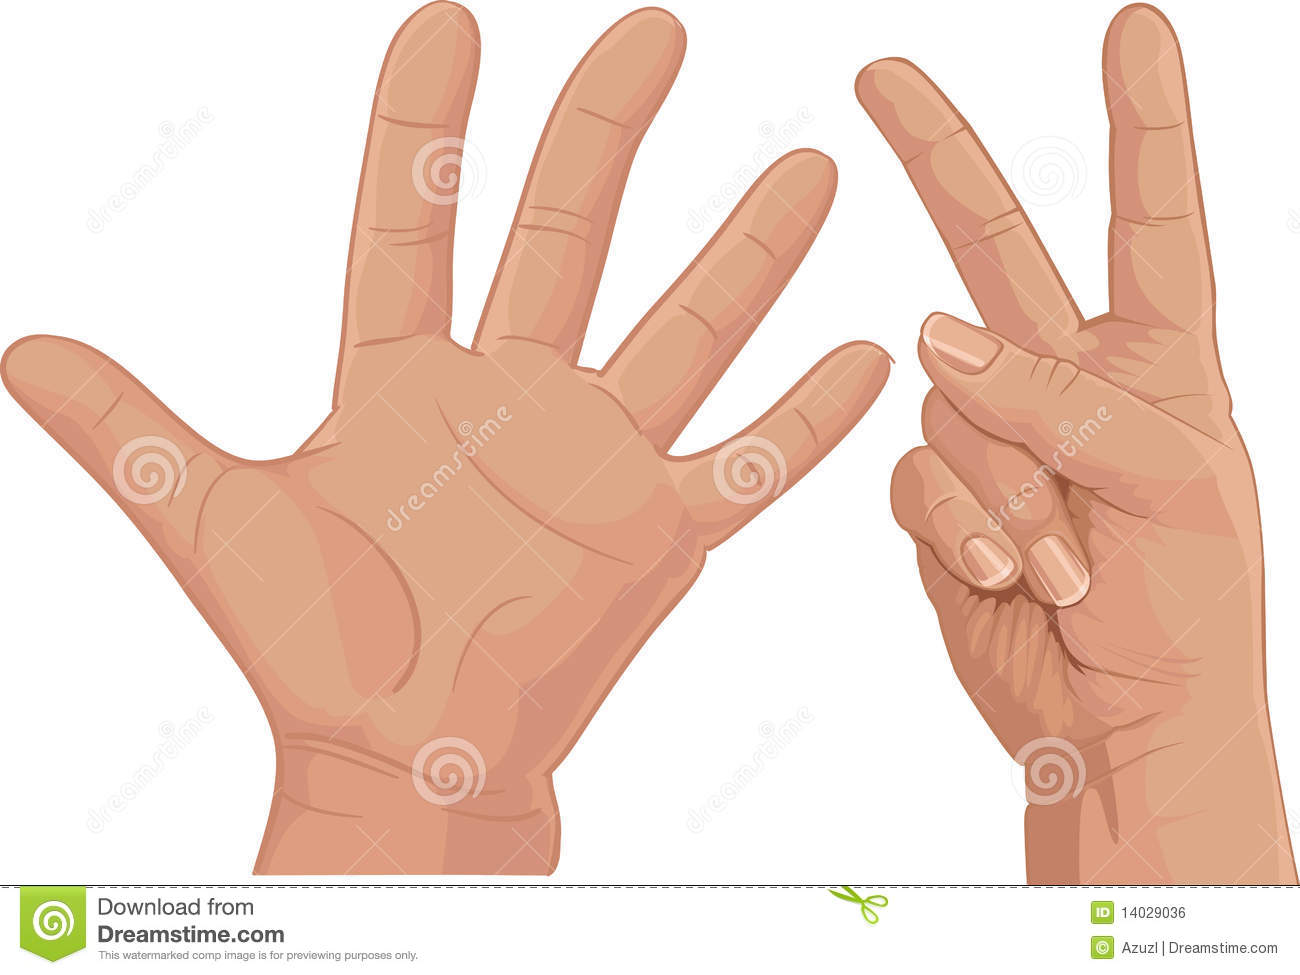 Hand Counting Seven Fingers stock photo 176424502 | iStock